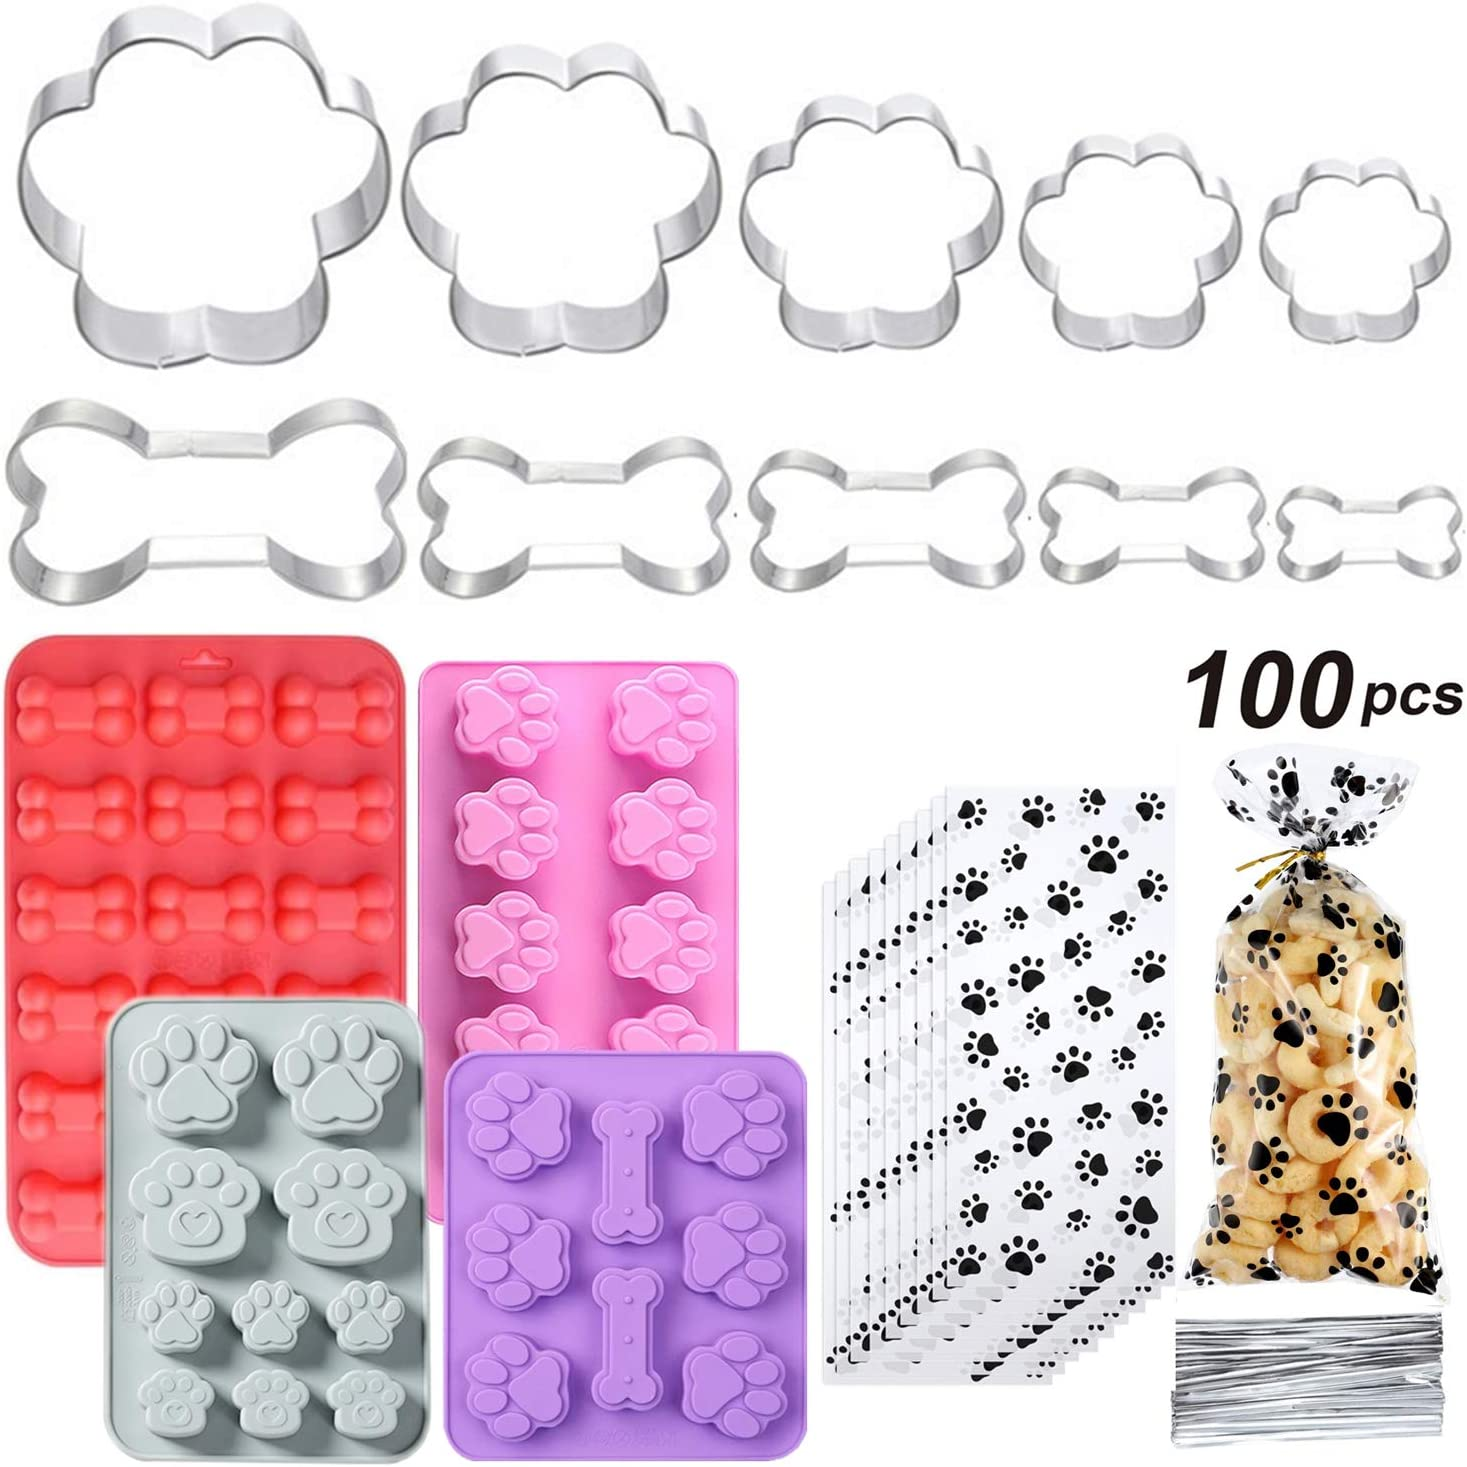 Dog Treat Cookie Cutter Set with Dog treat bags, Dog Bone Cookie Cutter,Puppy Treat Molds,Stainless Steel Dog Paw Print Cookie Mold for Homemade Treats(10 cutters+4 different molds+100 bags)